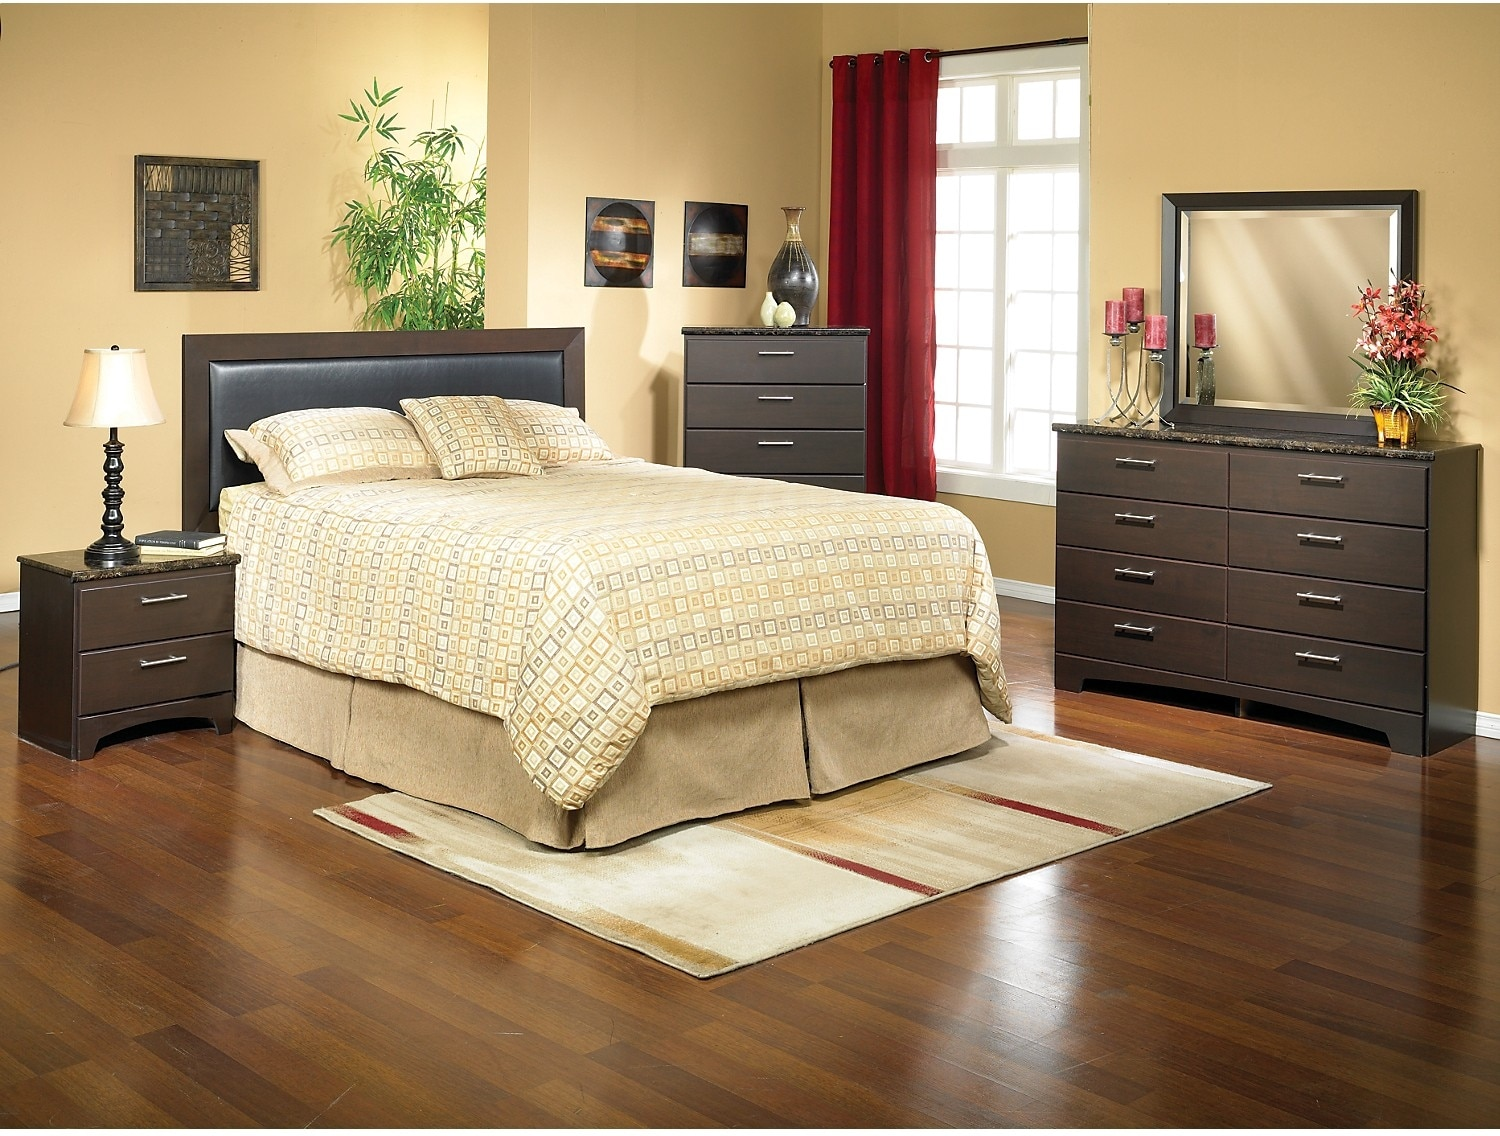 Oxford 5 piece queen bedroom package the brick for Bedroom furniture packages